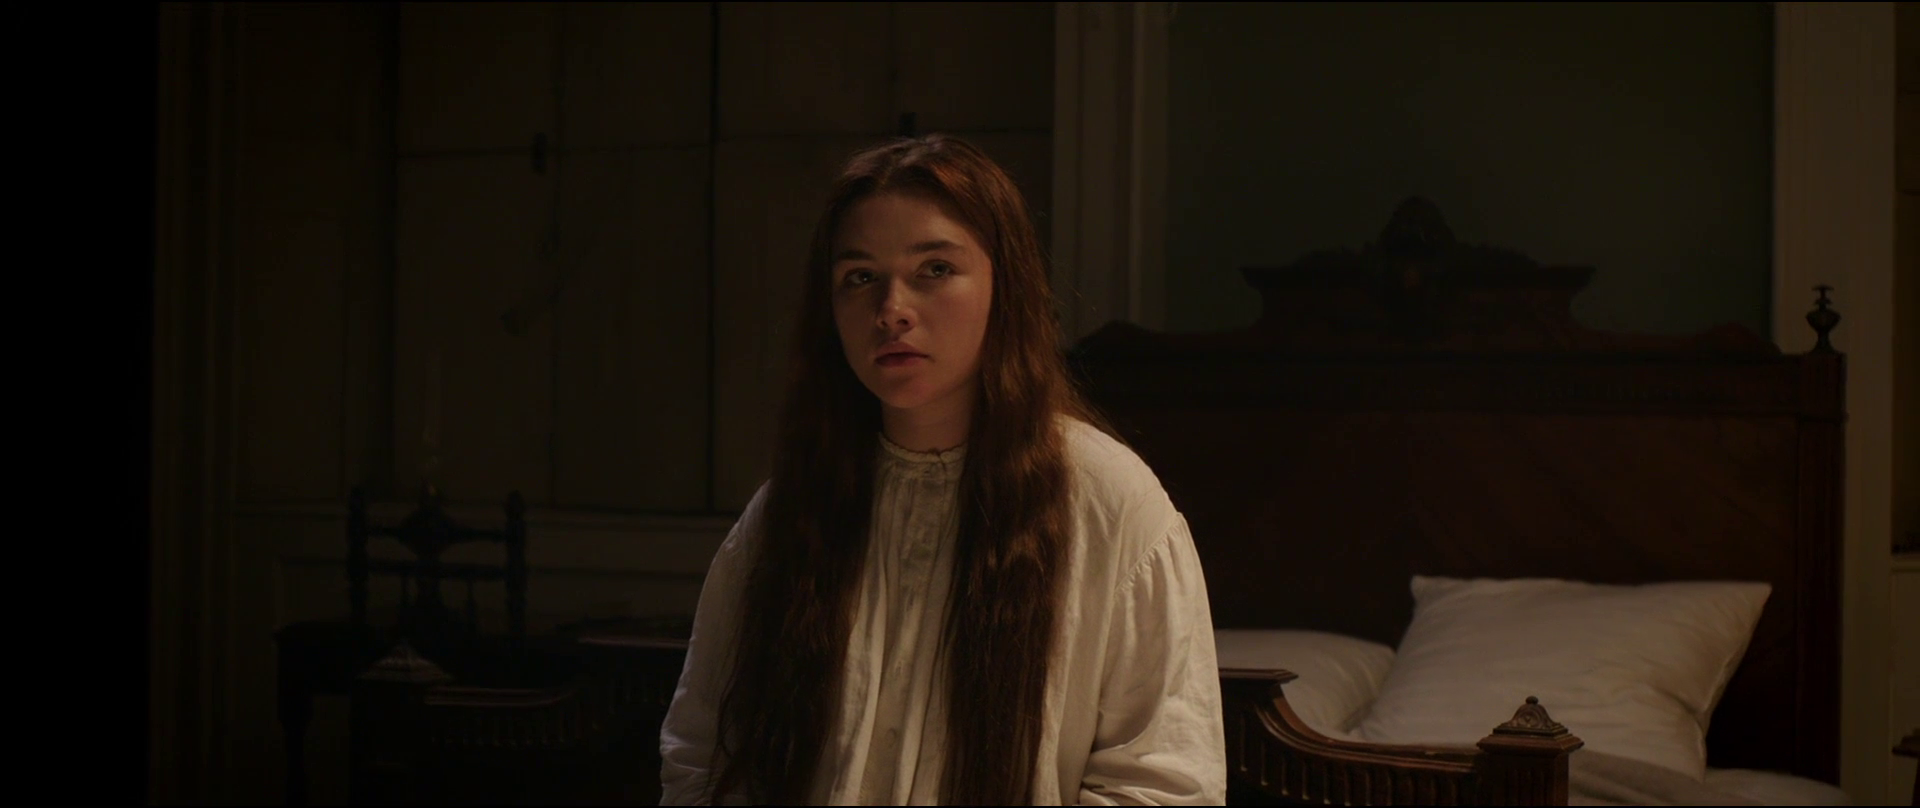 lady macbeth dramatic monologue The monologue i have chosen for lady macbeth is her famous scene after she has gone crazy it's the first scene of act 5 previously ross has told macduff about his family's murder and malcom encourages them all to overthrow macbeth.